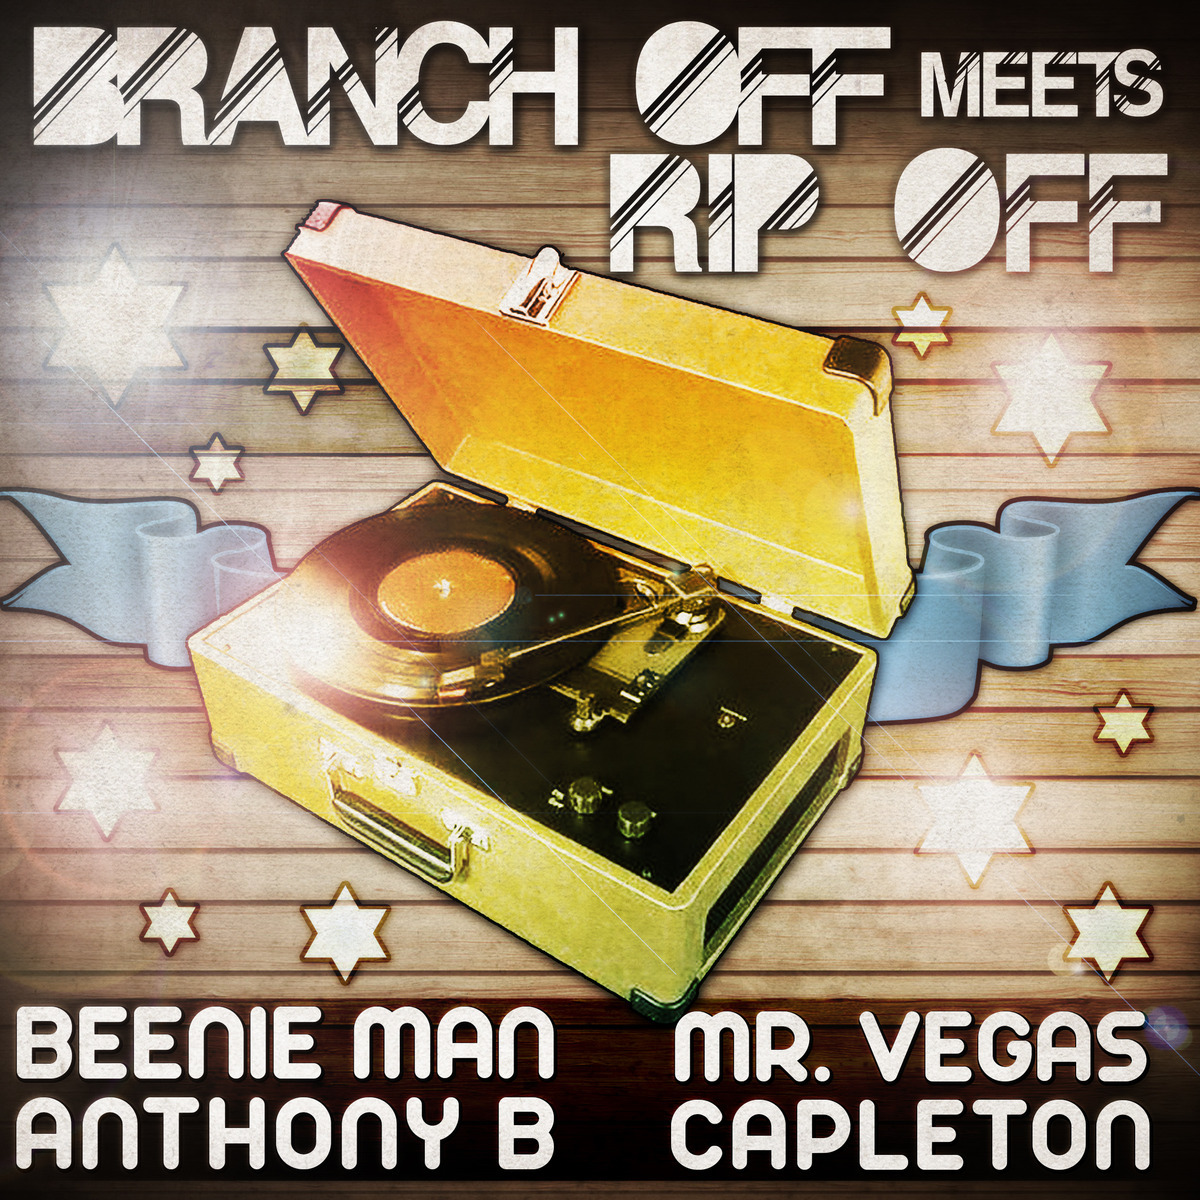 Branch-Off-Riddim-meets-rip-off-stone-love-music-cover-artwork-2013